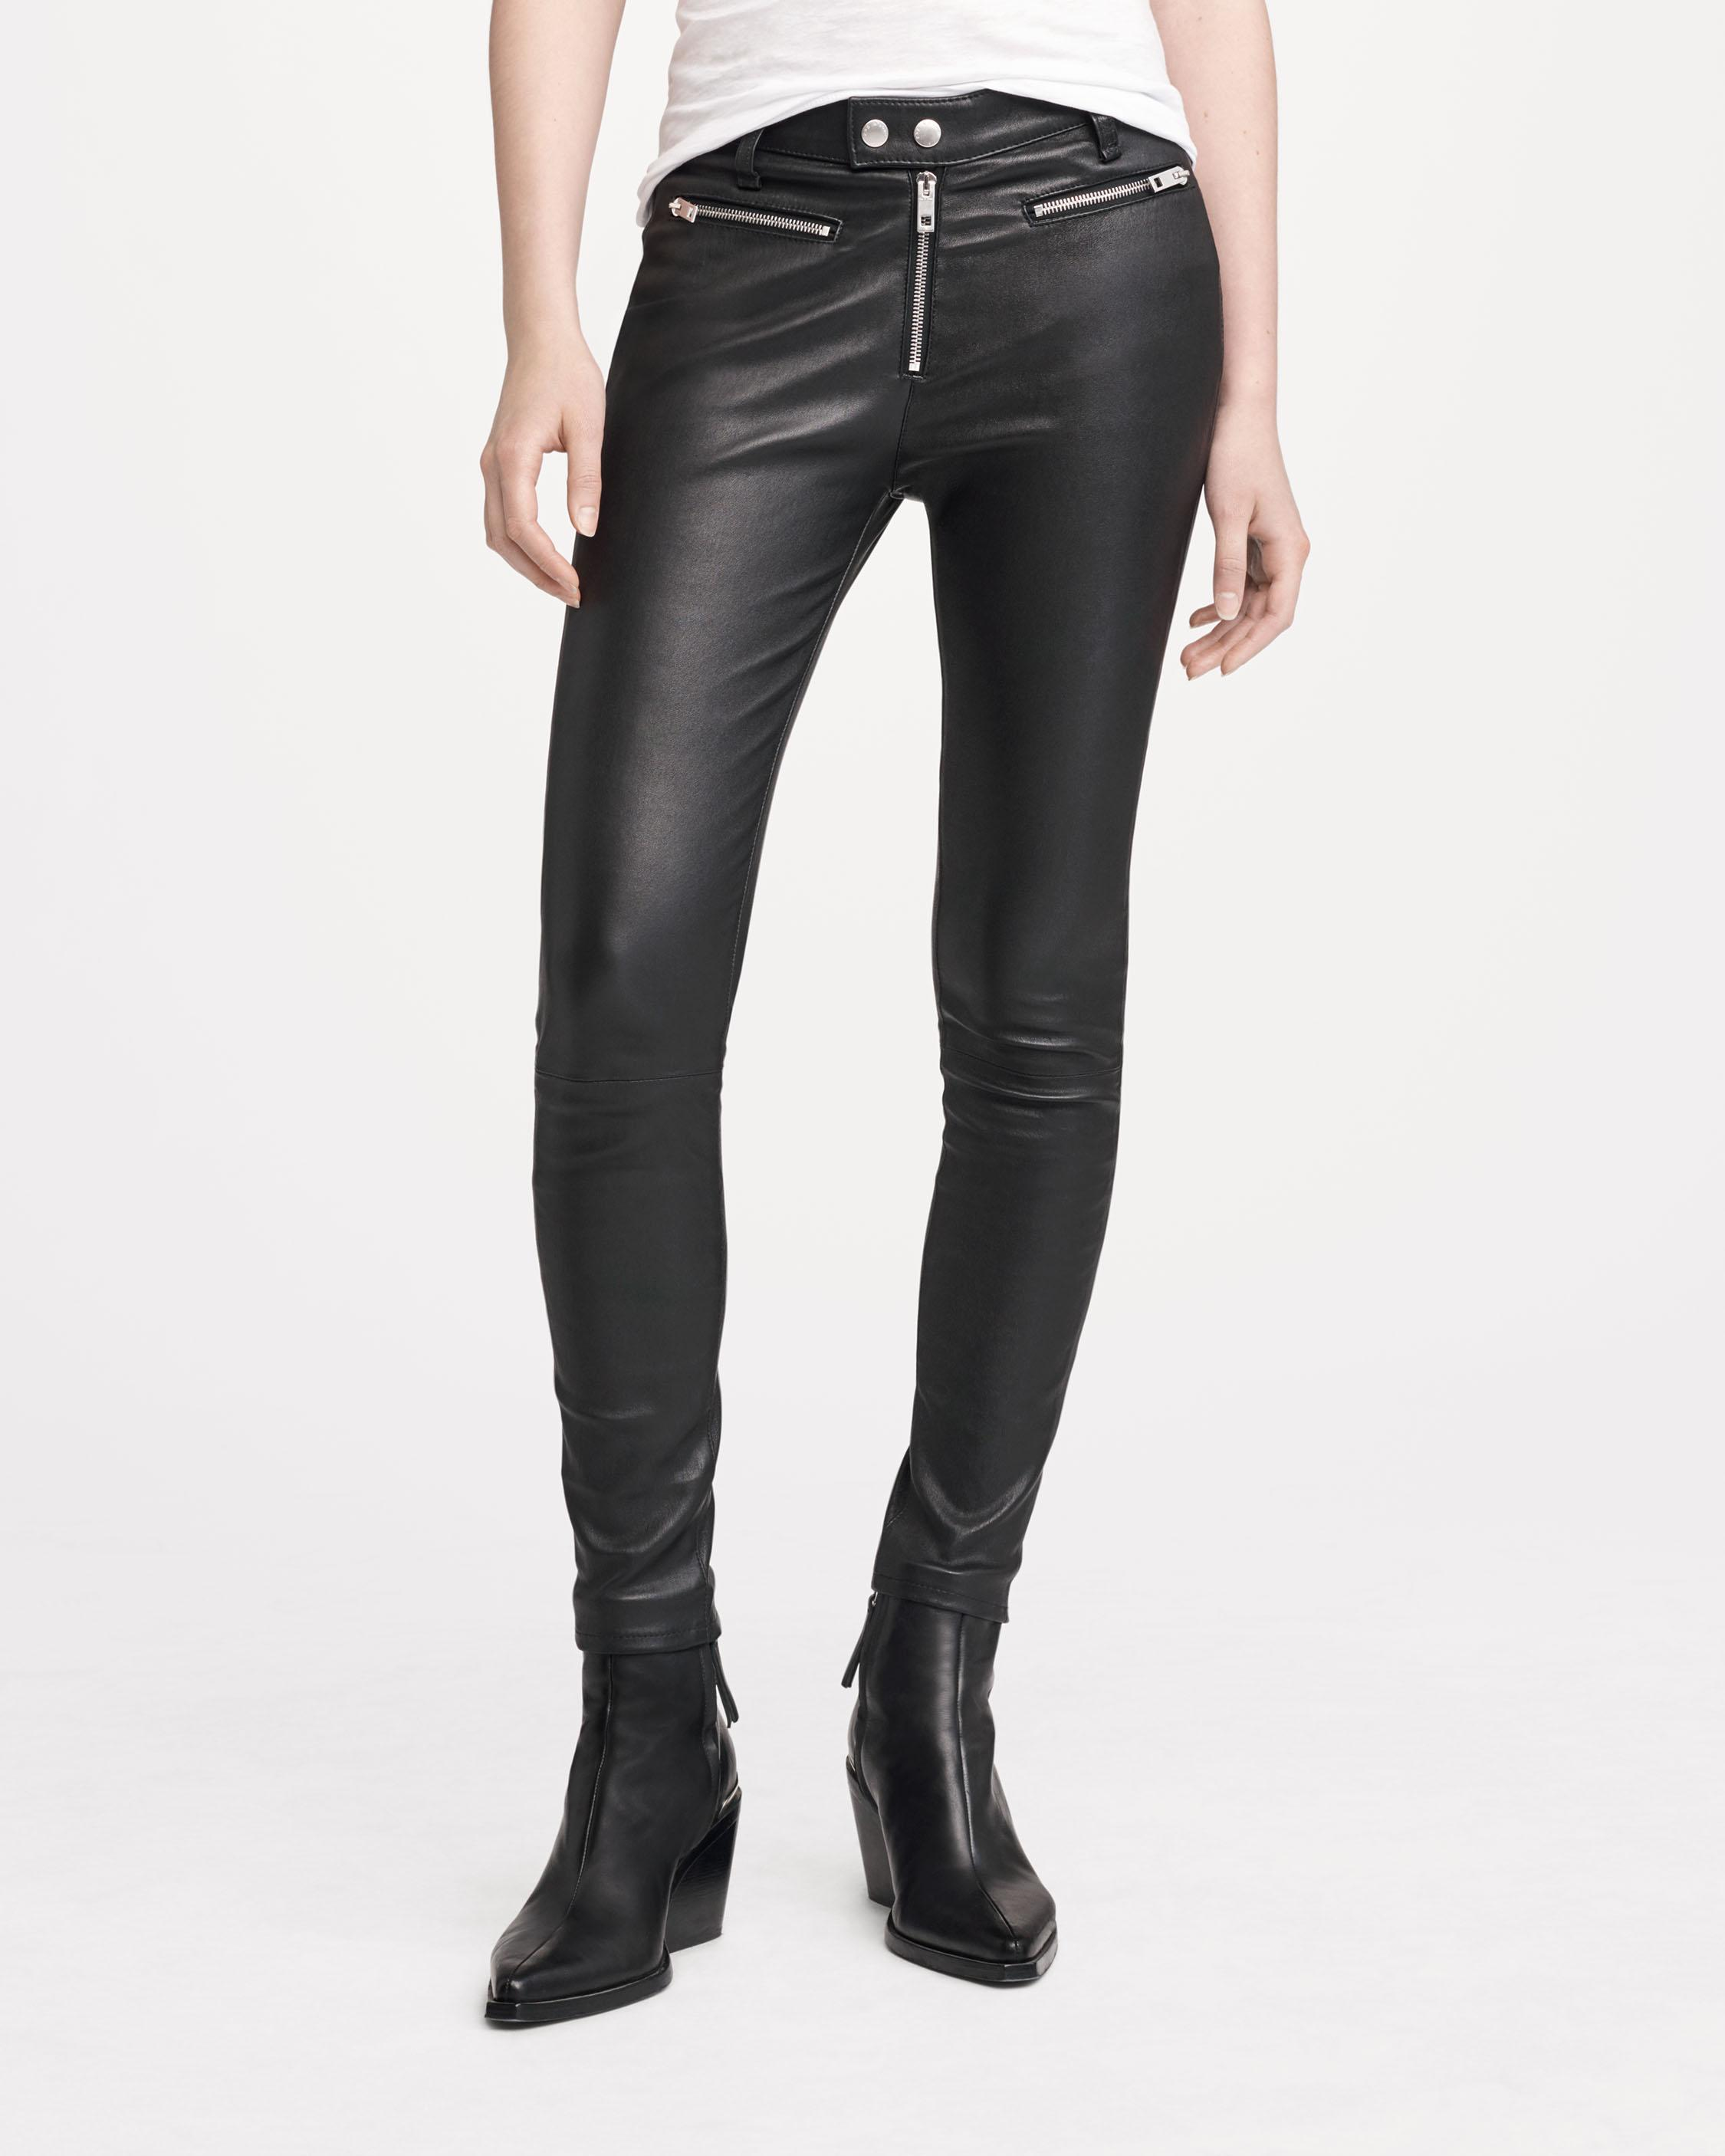 0d725535ec14 Ryder Leather Pants - Black Skinny Leather   Moto Details